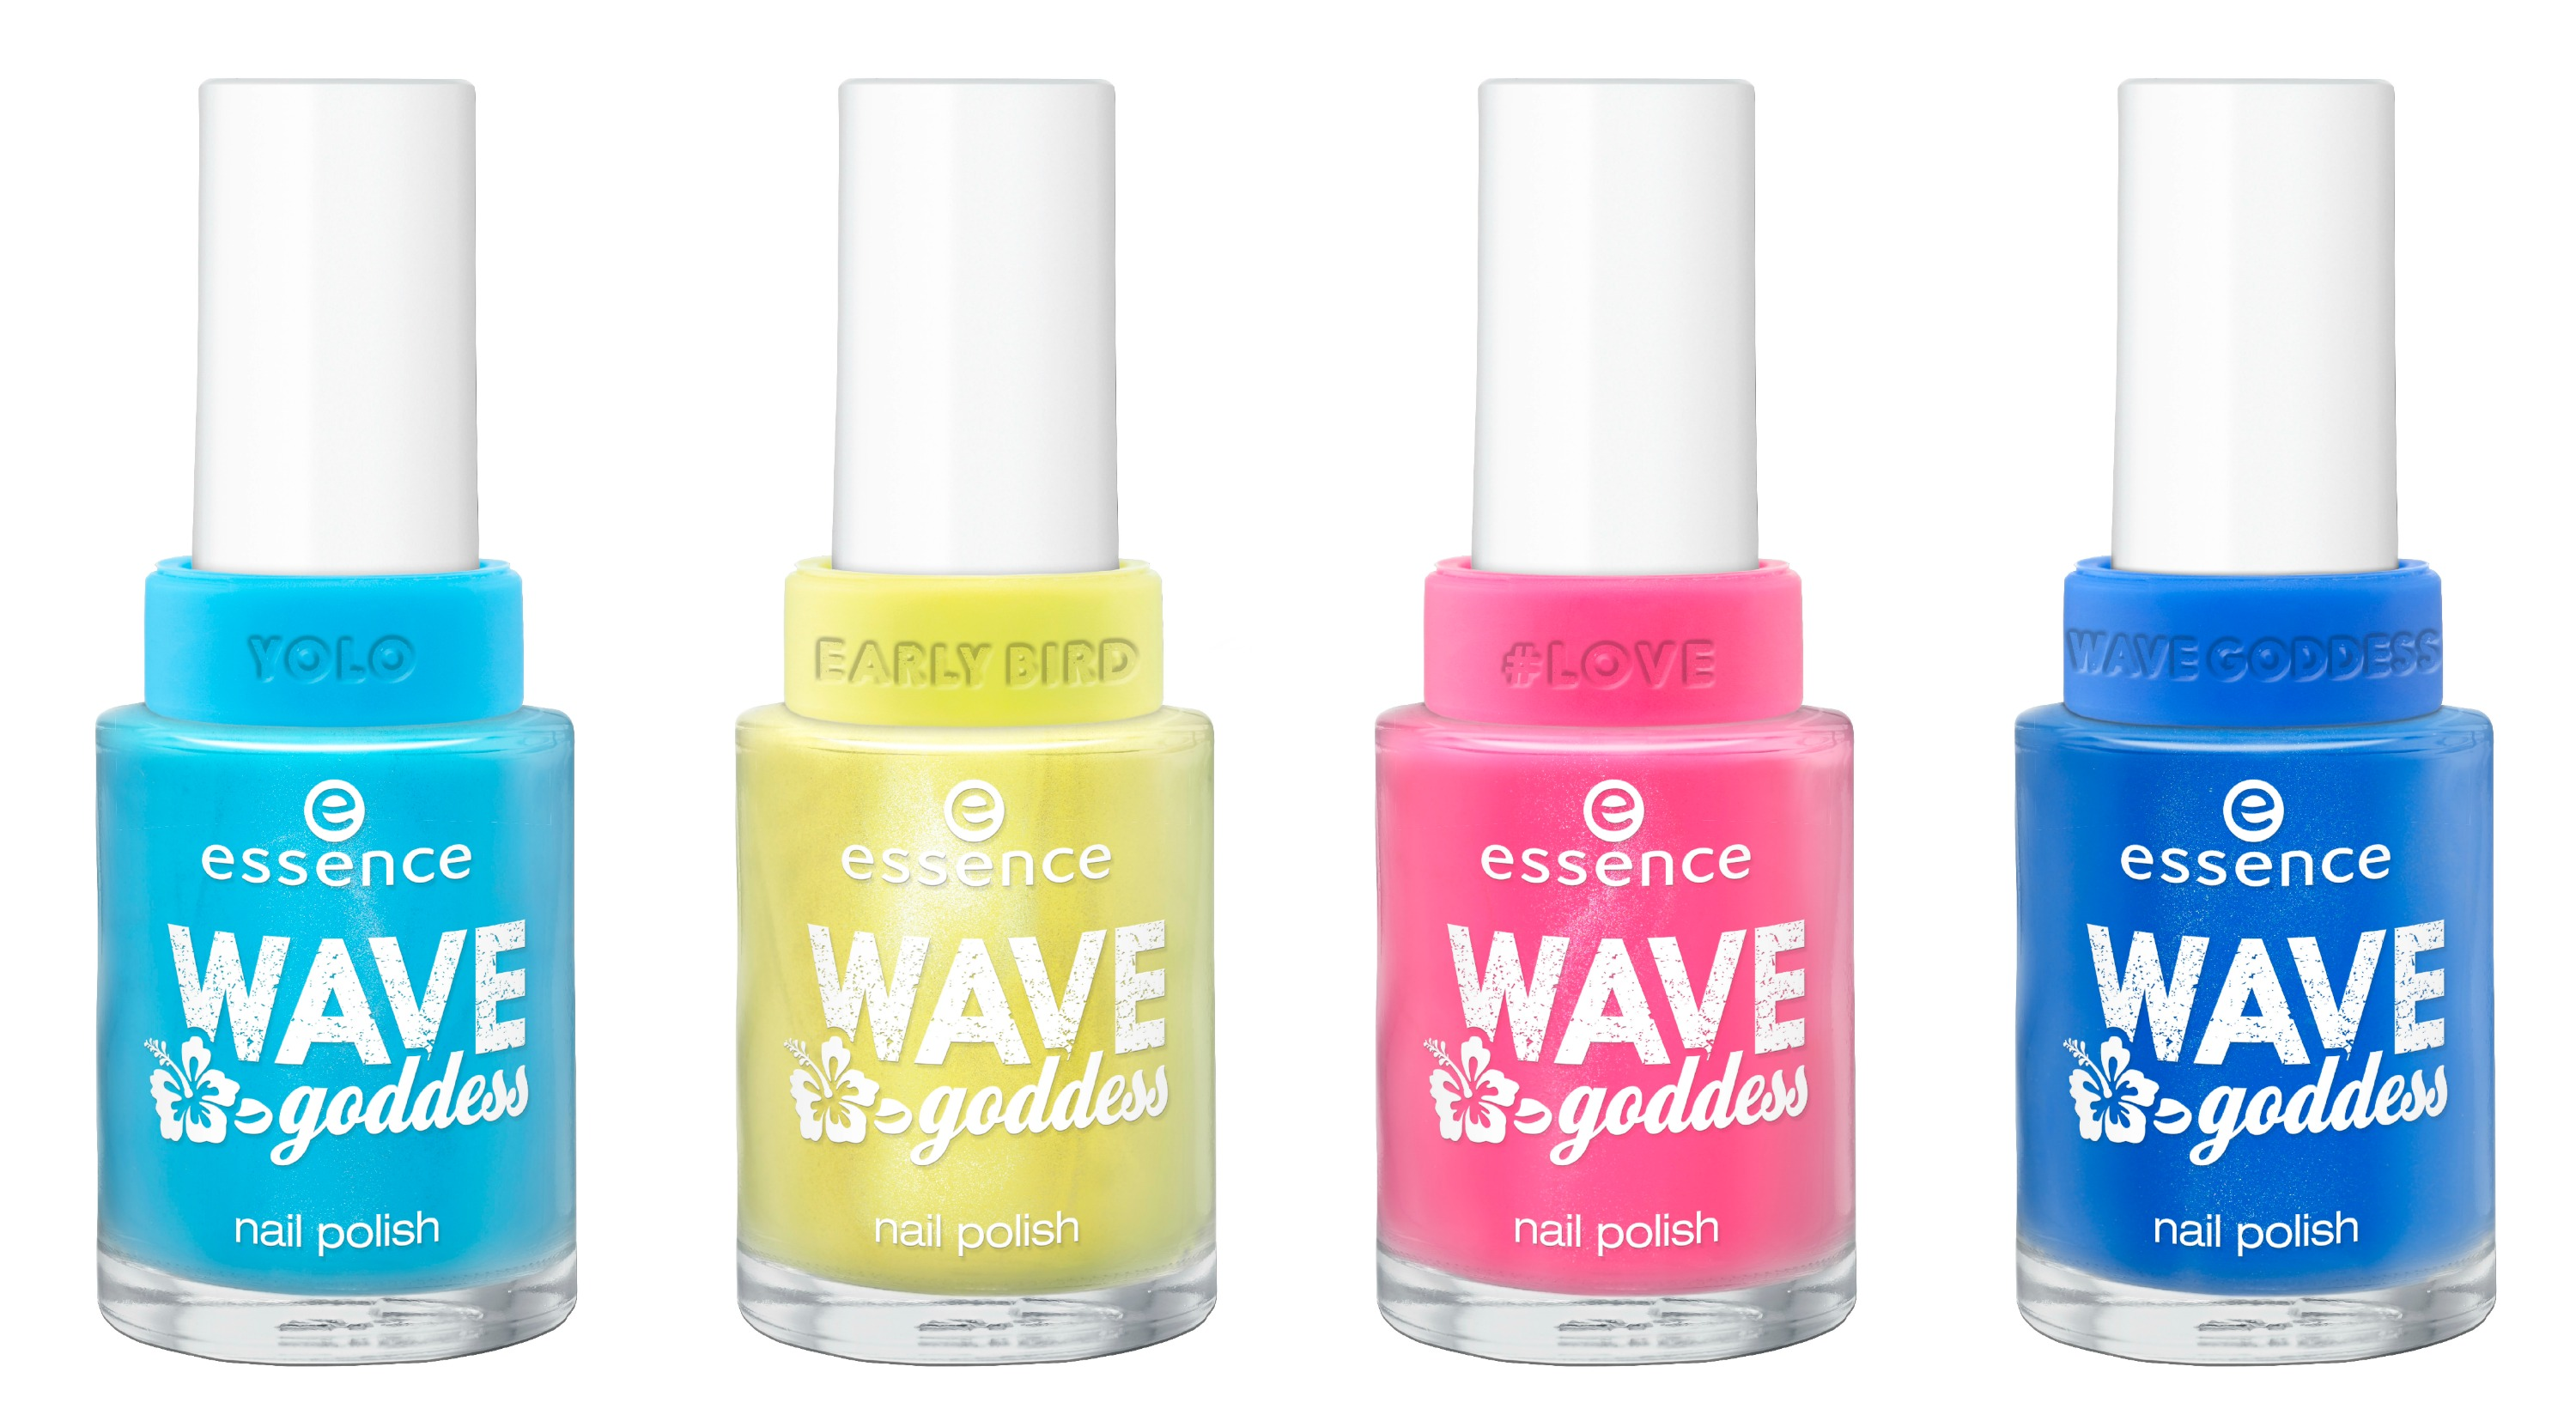 Essence wave goddess nail polish